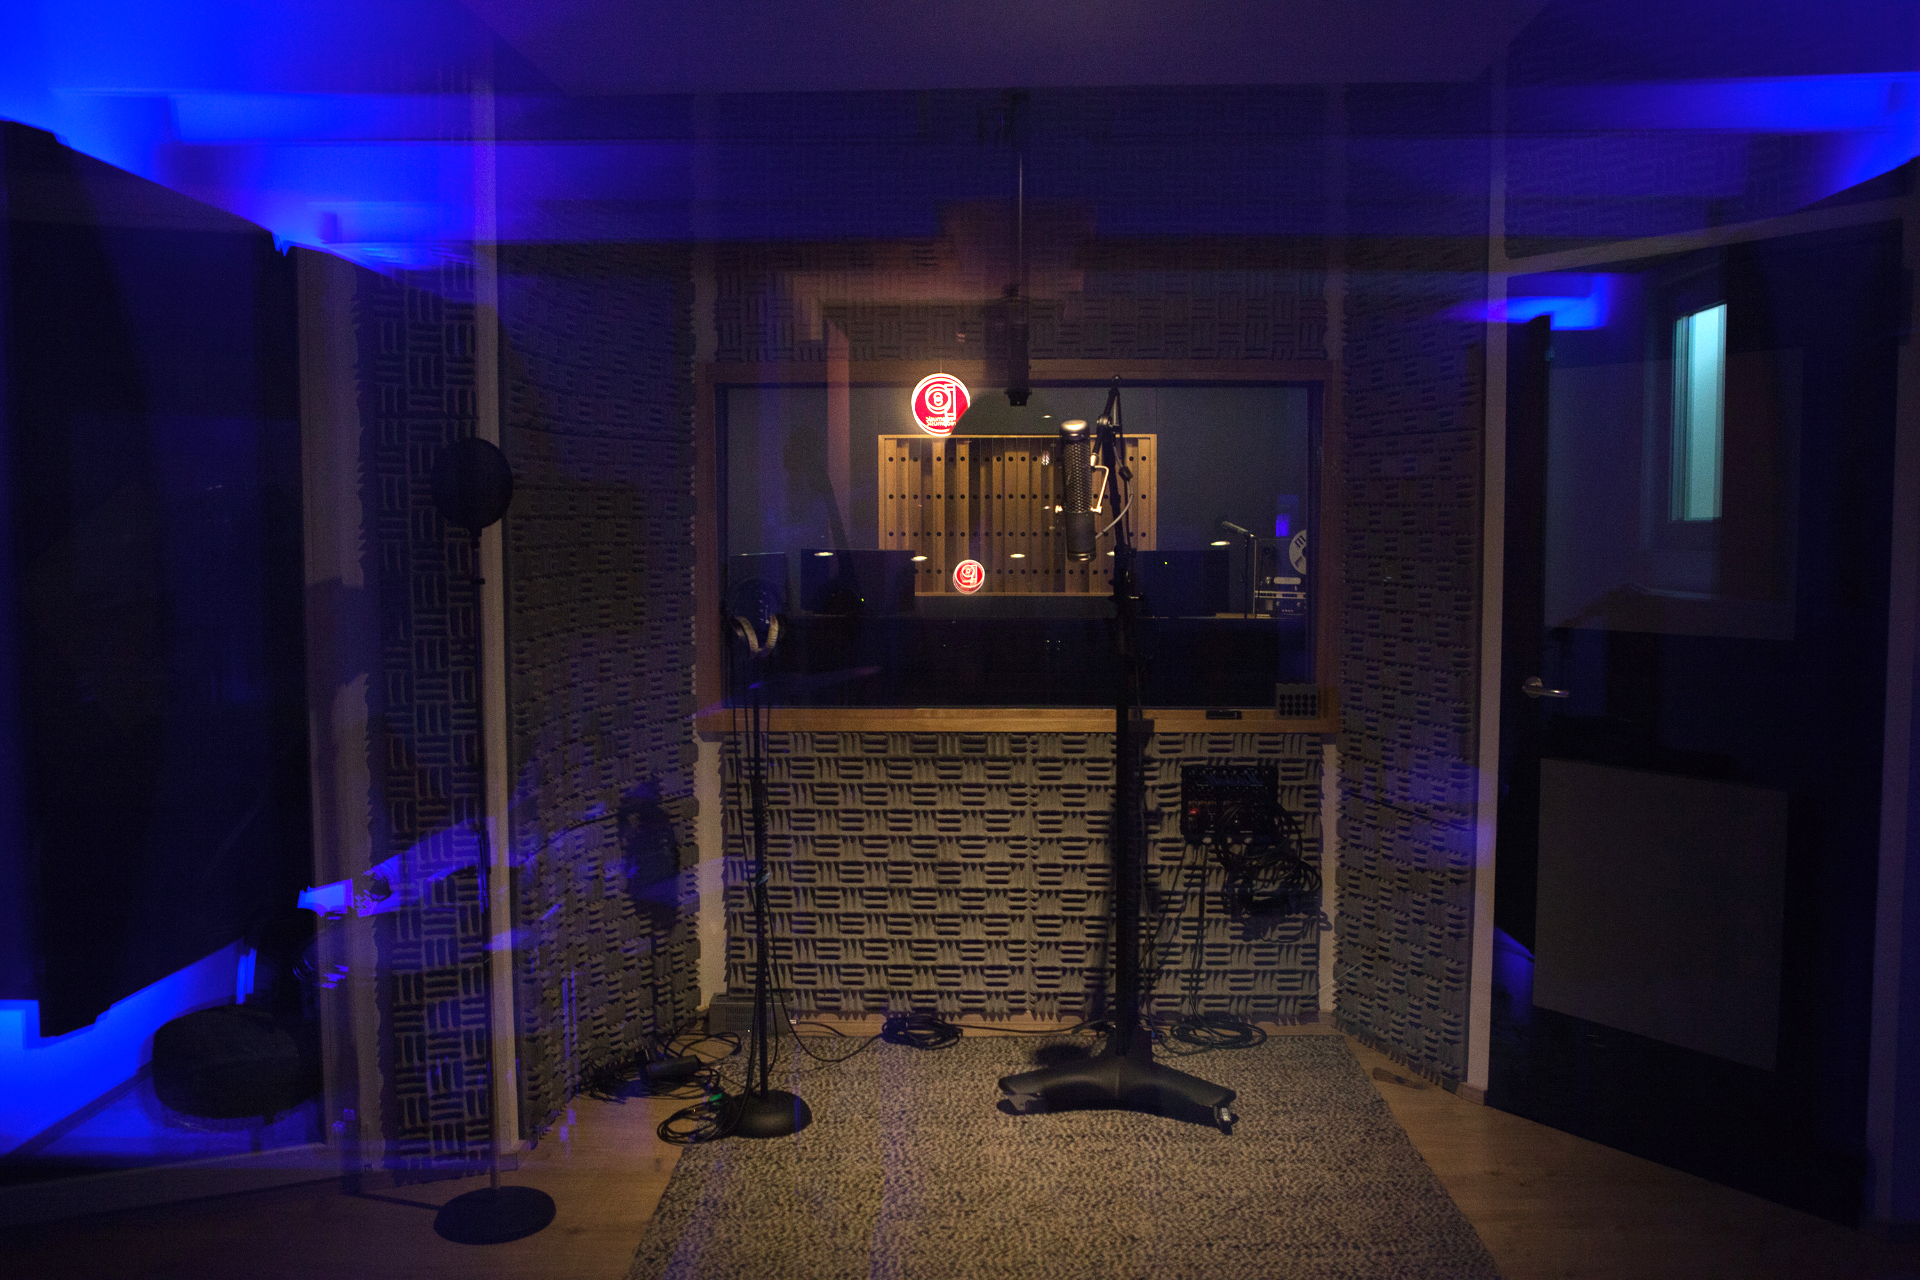 Tonstudio in Wien-RPM Sound Studio